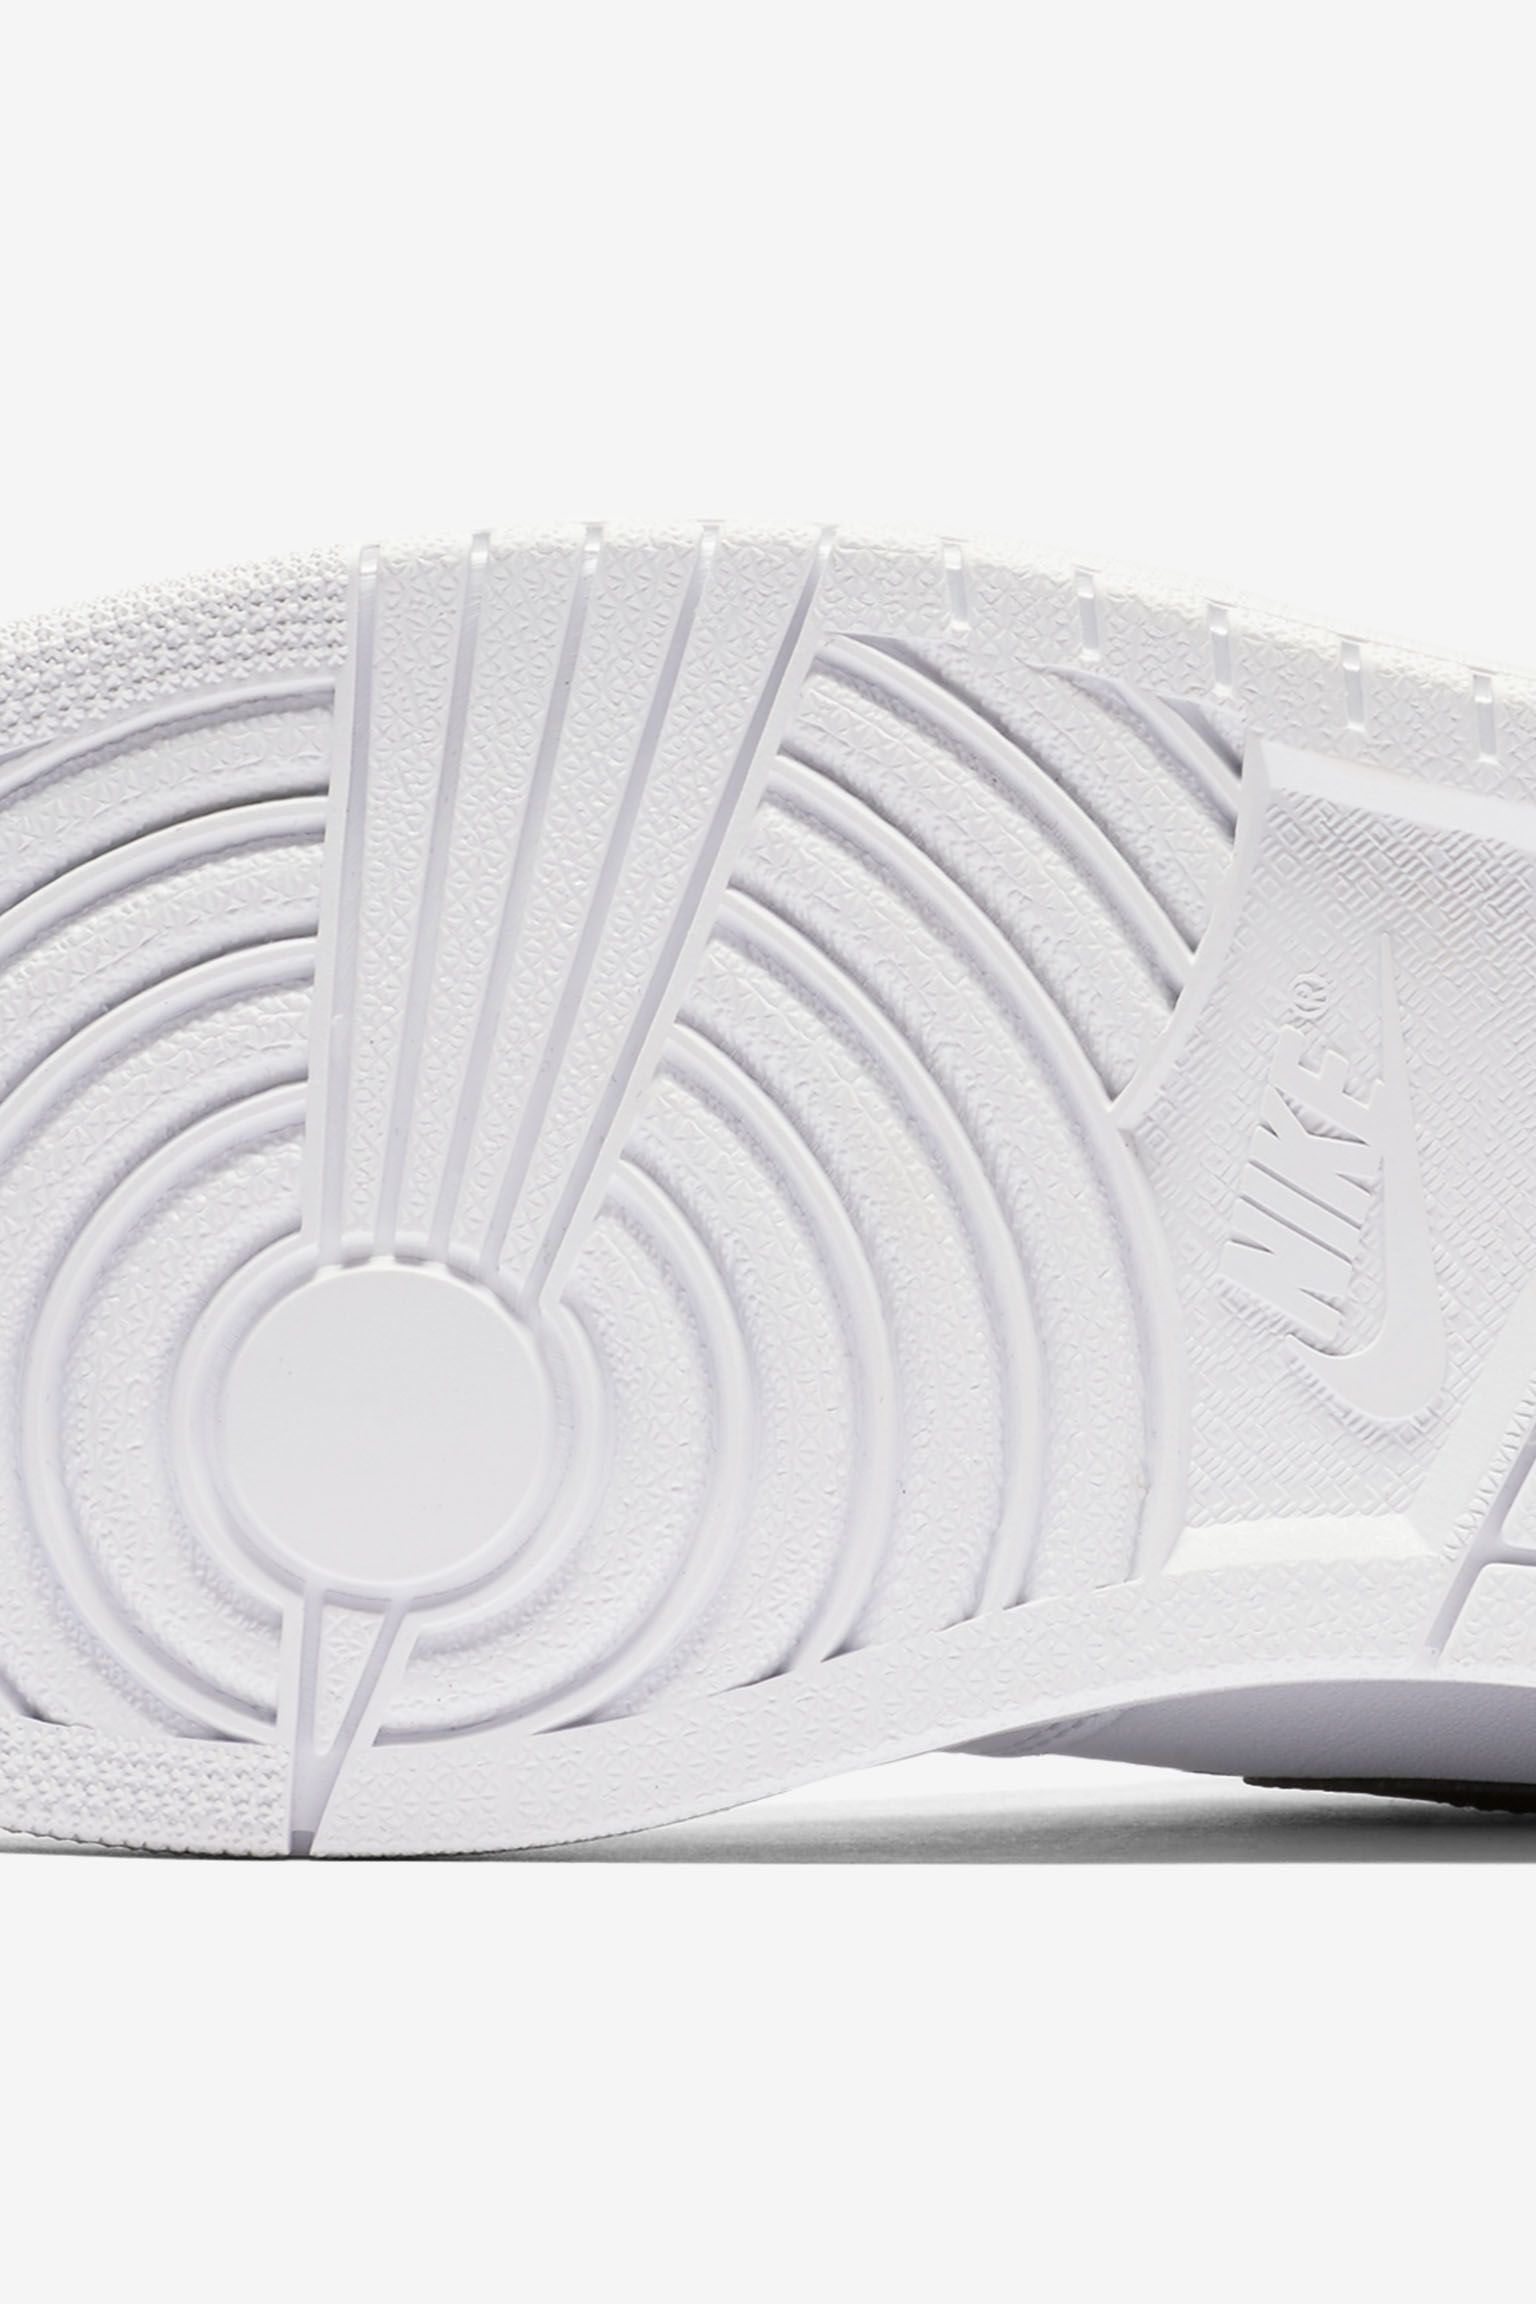 Air Jordan 1 Retro High OG 'White & Black' Release Date